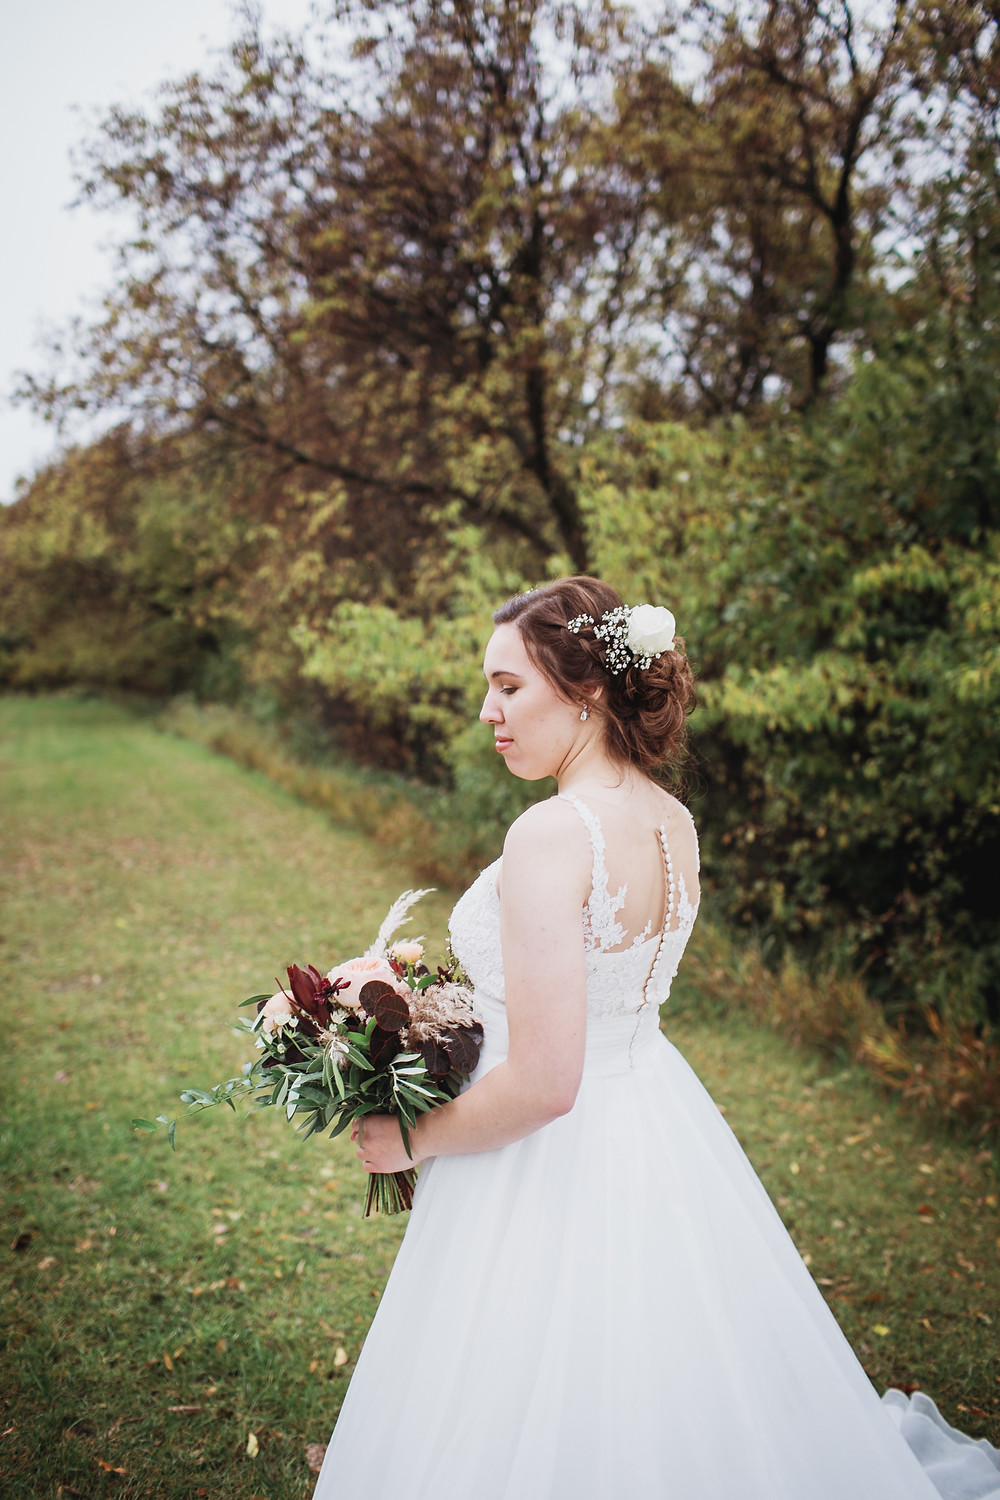 Bride looks over shoulder during her rainy fall wedding day.